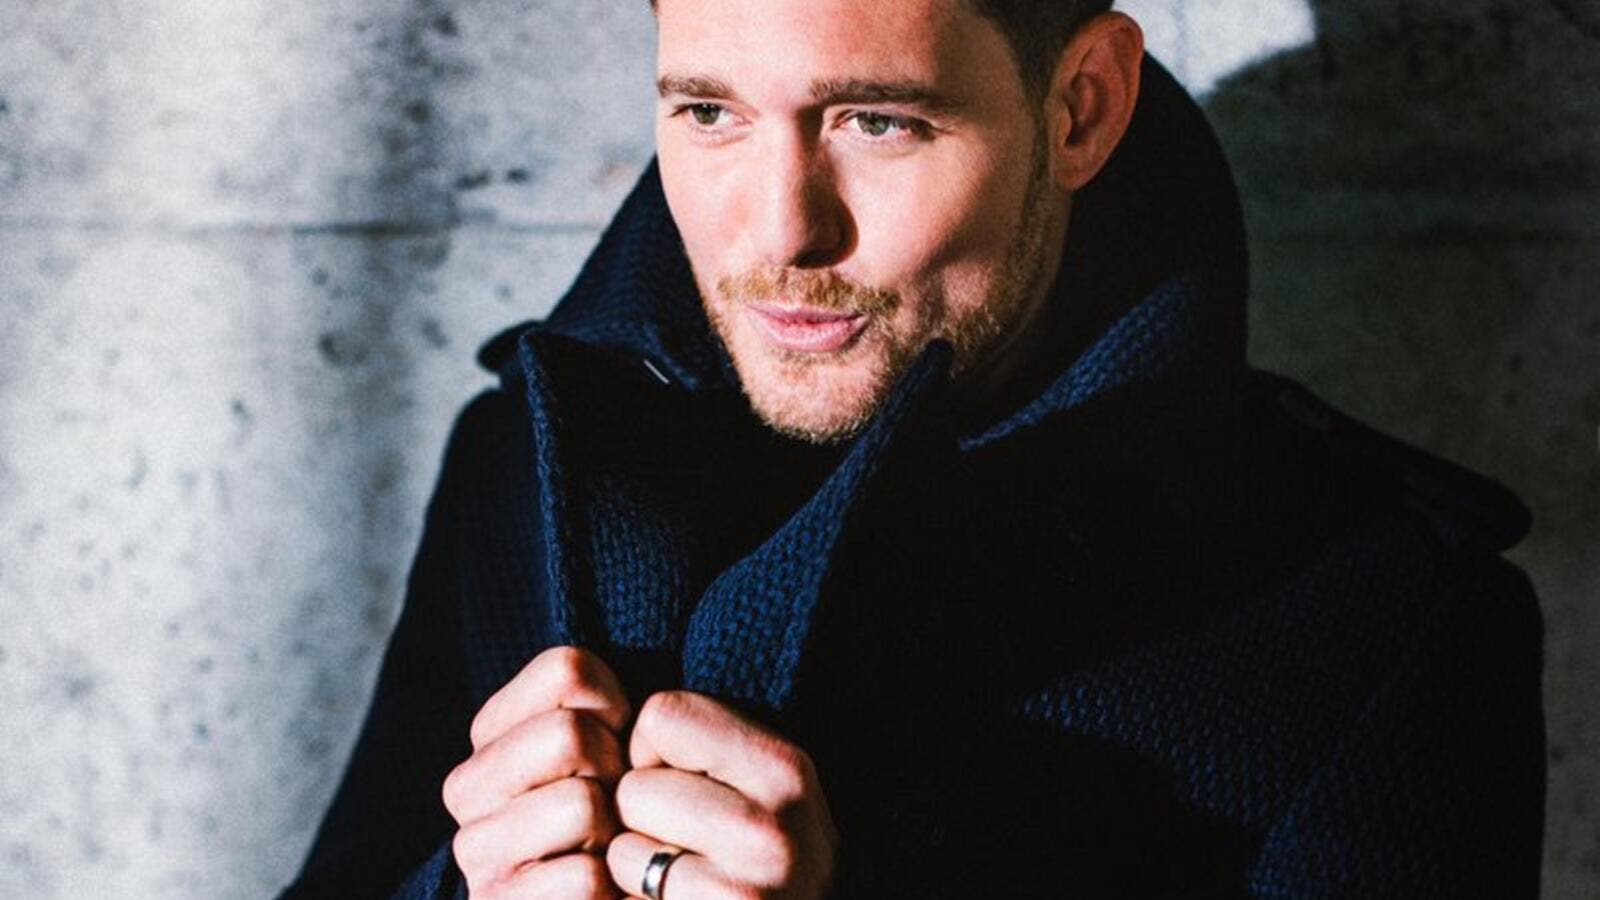 Michael Buble (Twitter)